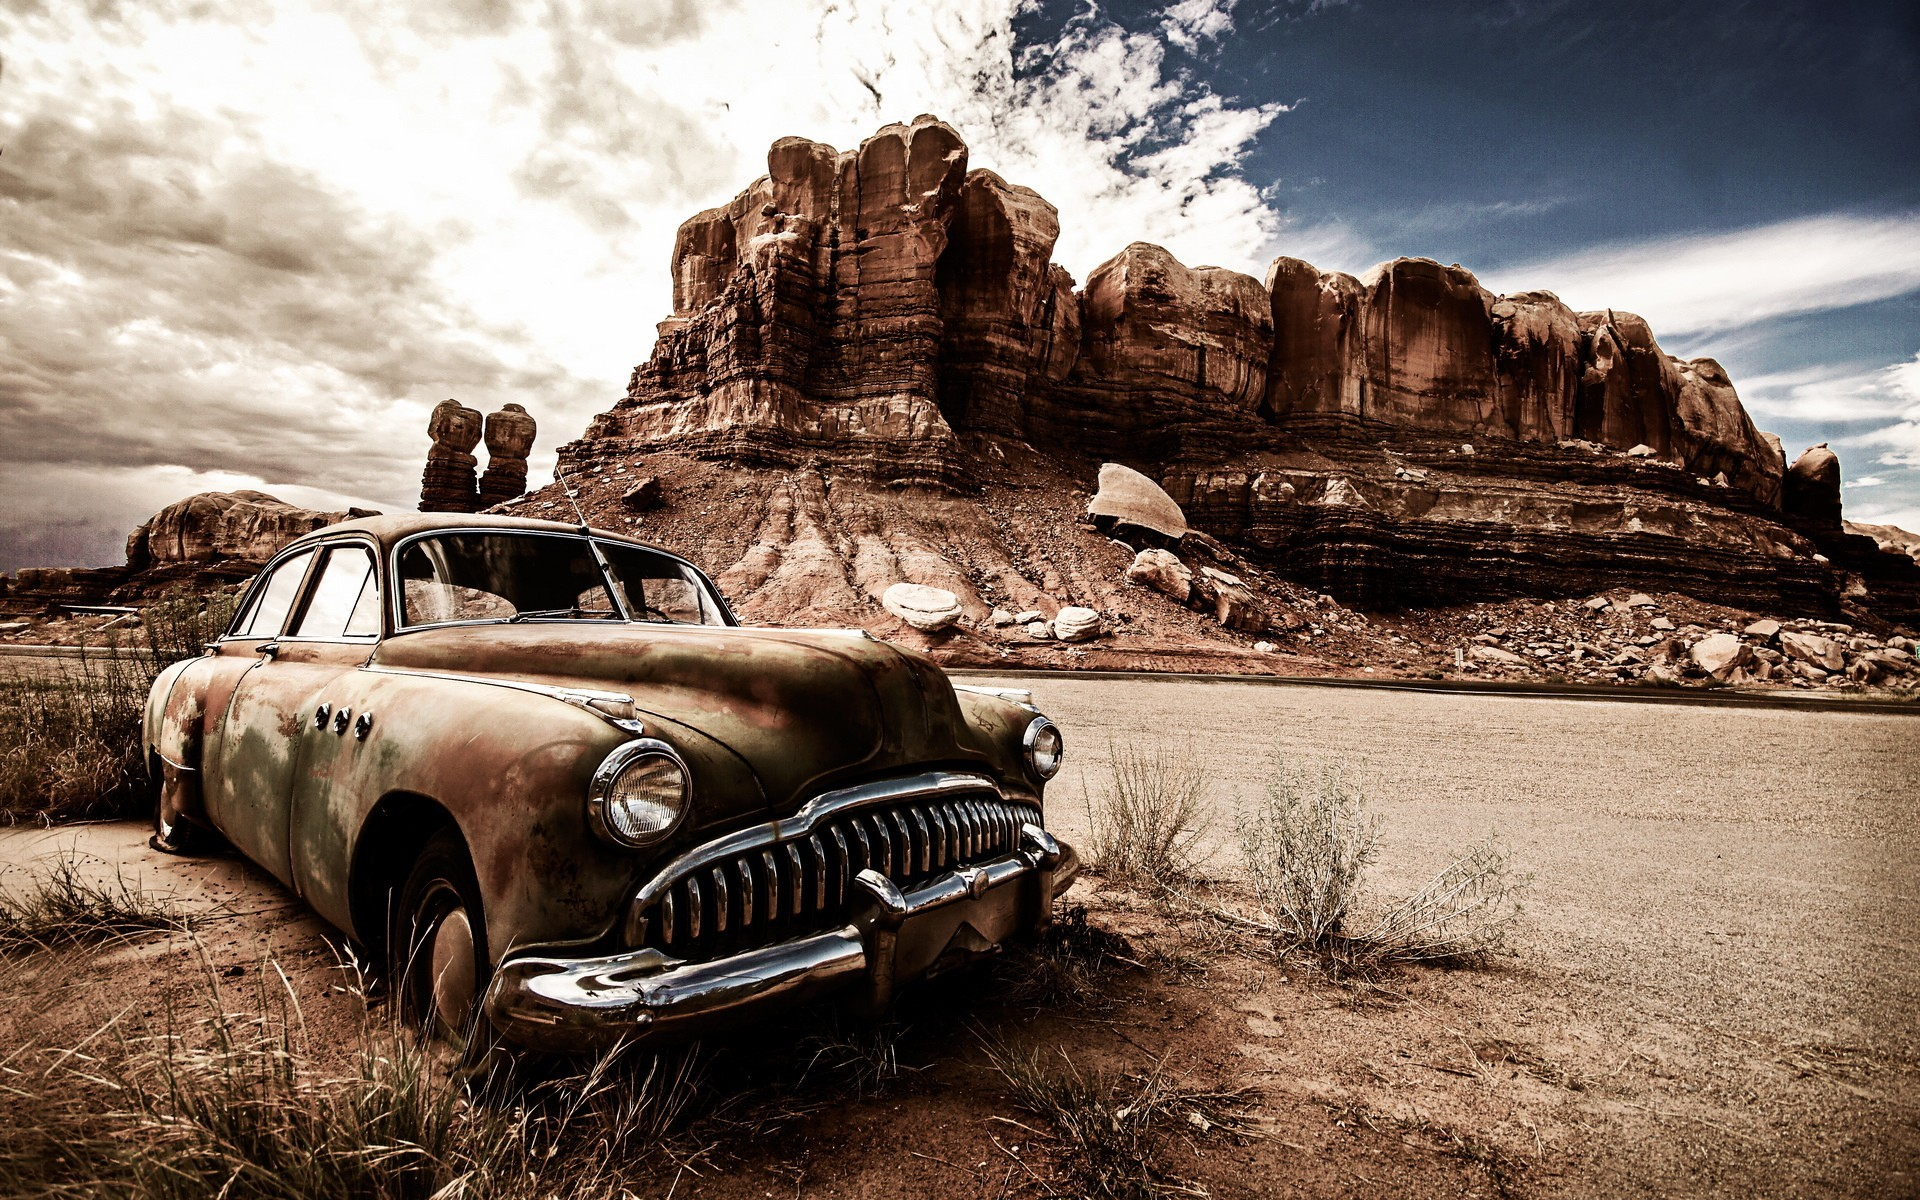 Res: 1920x1200, Vintage Car Wallpapers 8 - 1920 X 1200